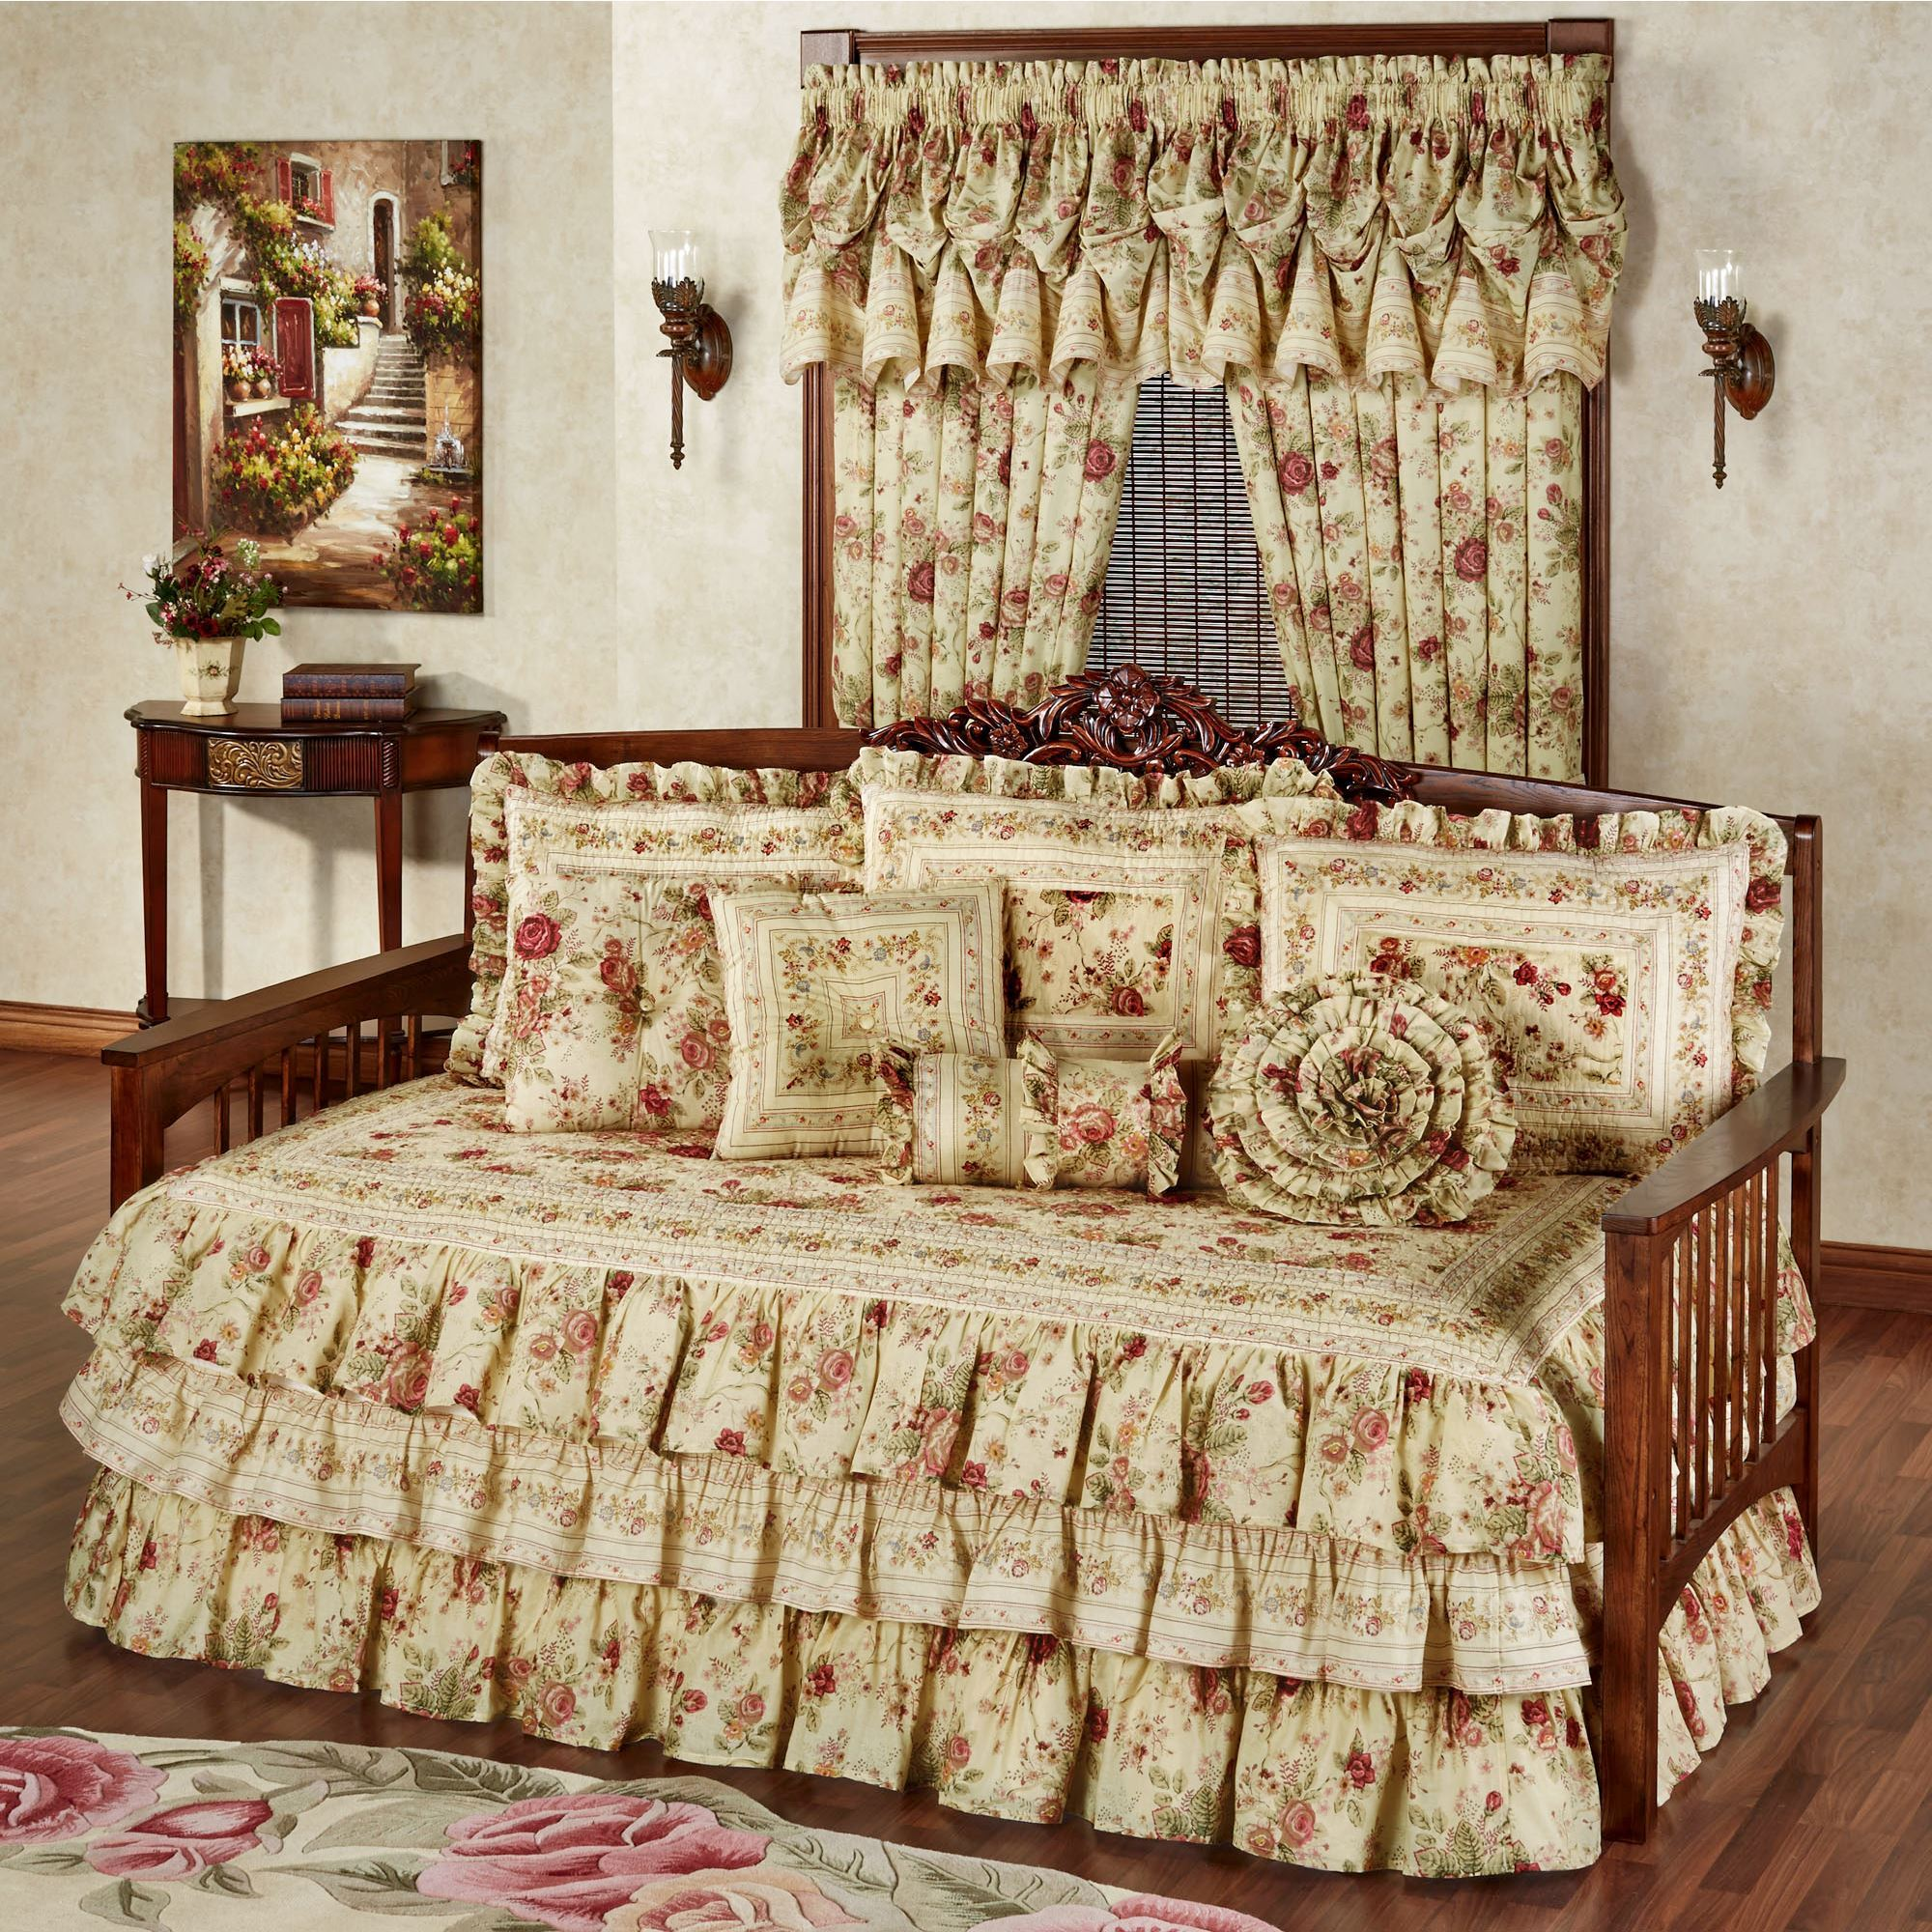 Vintage Rose Floral Ruffled Daybed Bedding Set